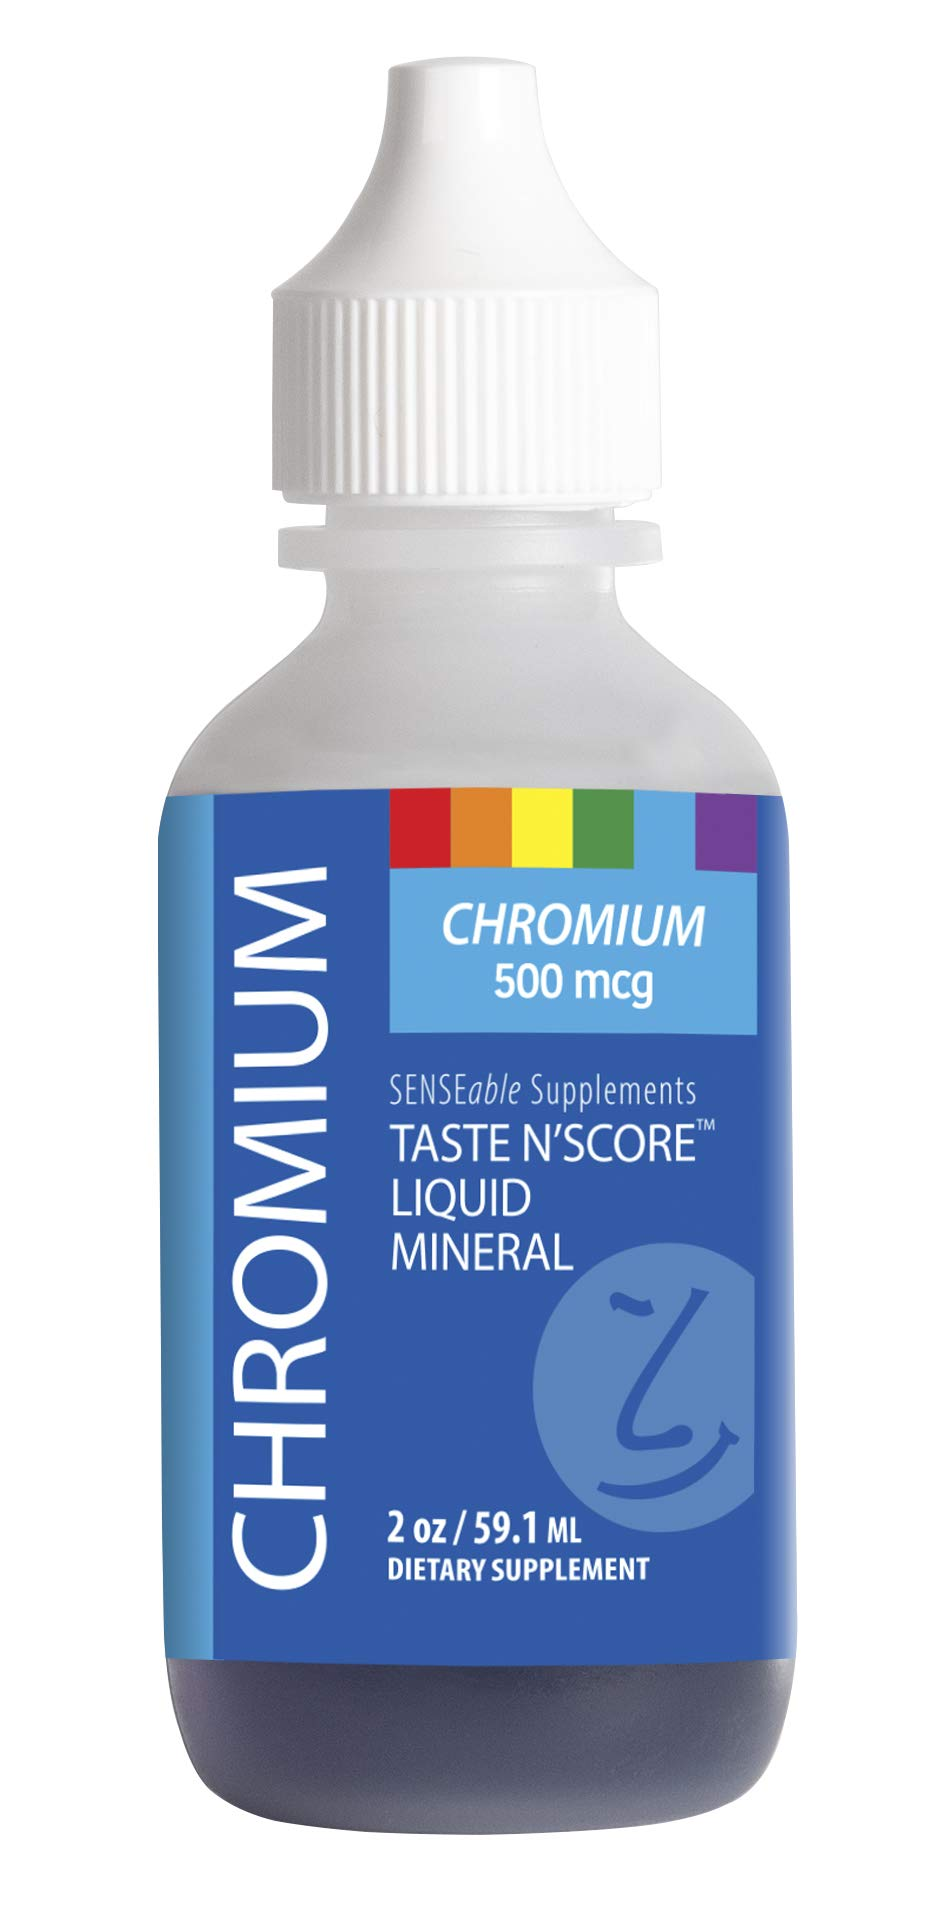 Amazon com: Taste N' Score | Chromium | Liquid Mineral Supplement